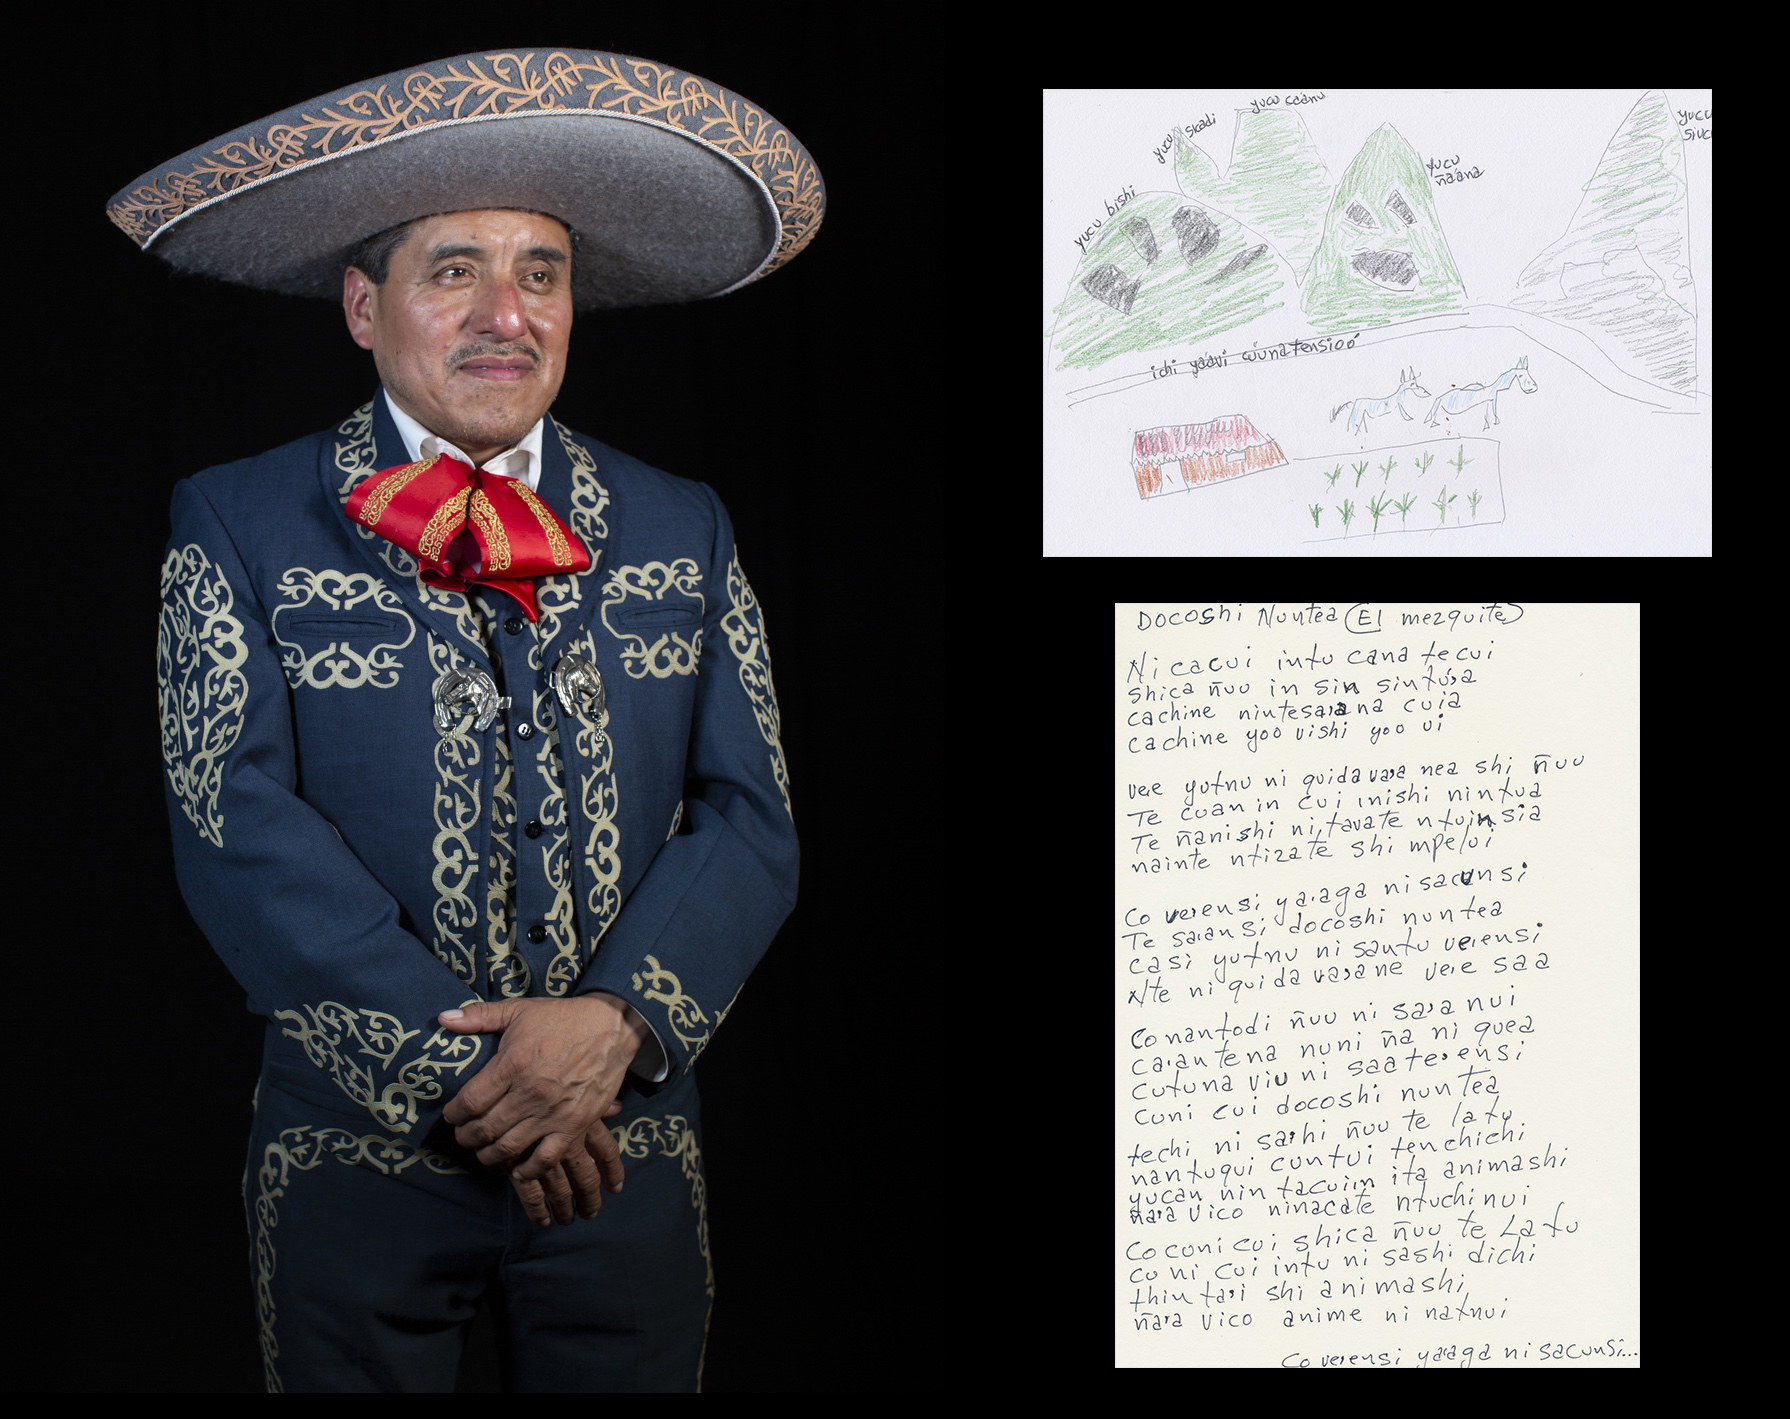 An Indigenous Mexican man in costume, with a piece of paper written in his language next to him